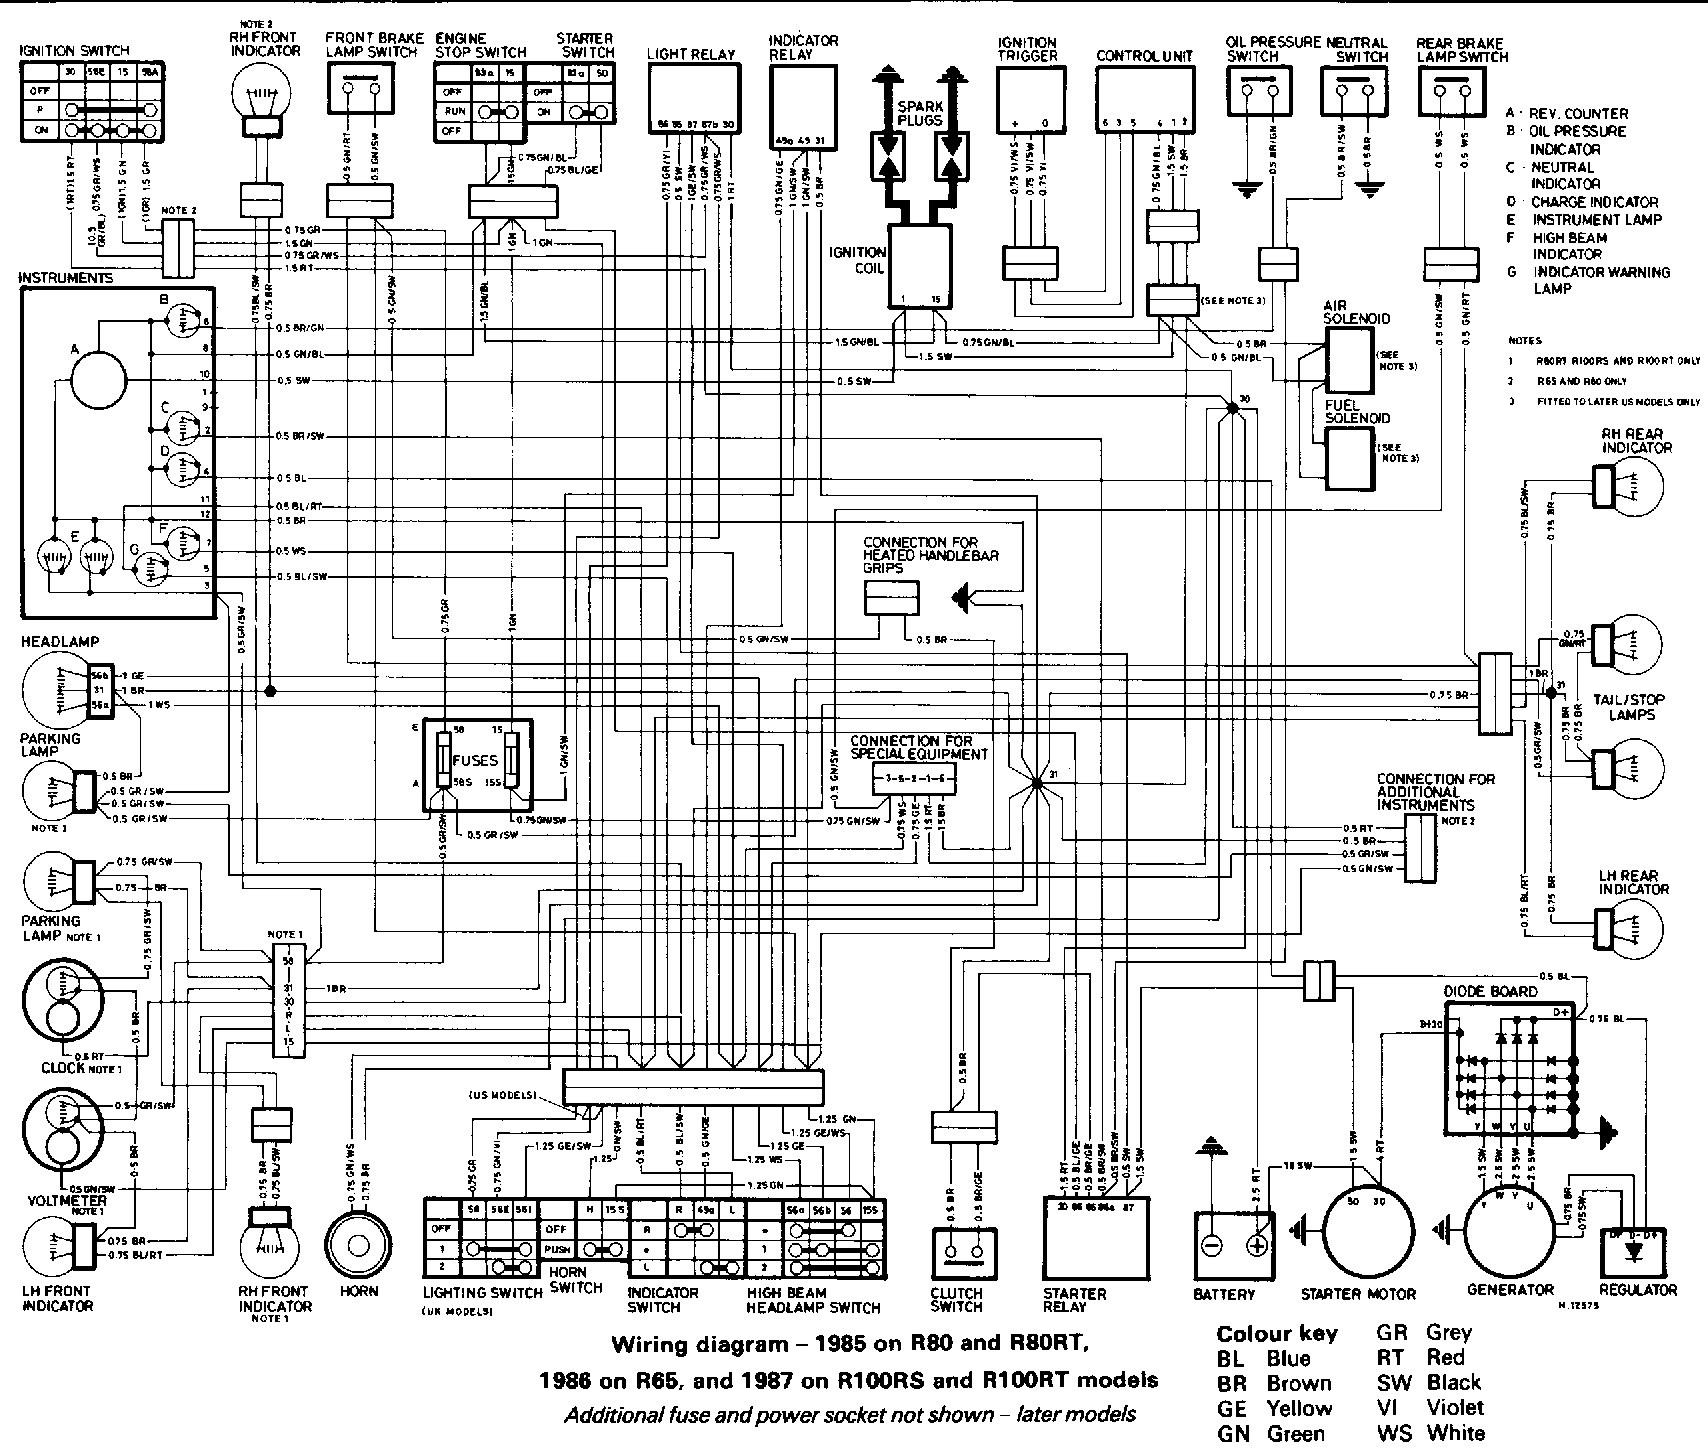 Diagram 2010 Bmw Z4 Wiring Diagram Full Version Hd Quality Wiring Diagram Diagramsabiac Nowroma It